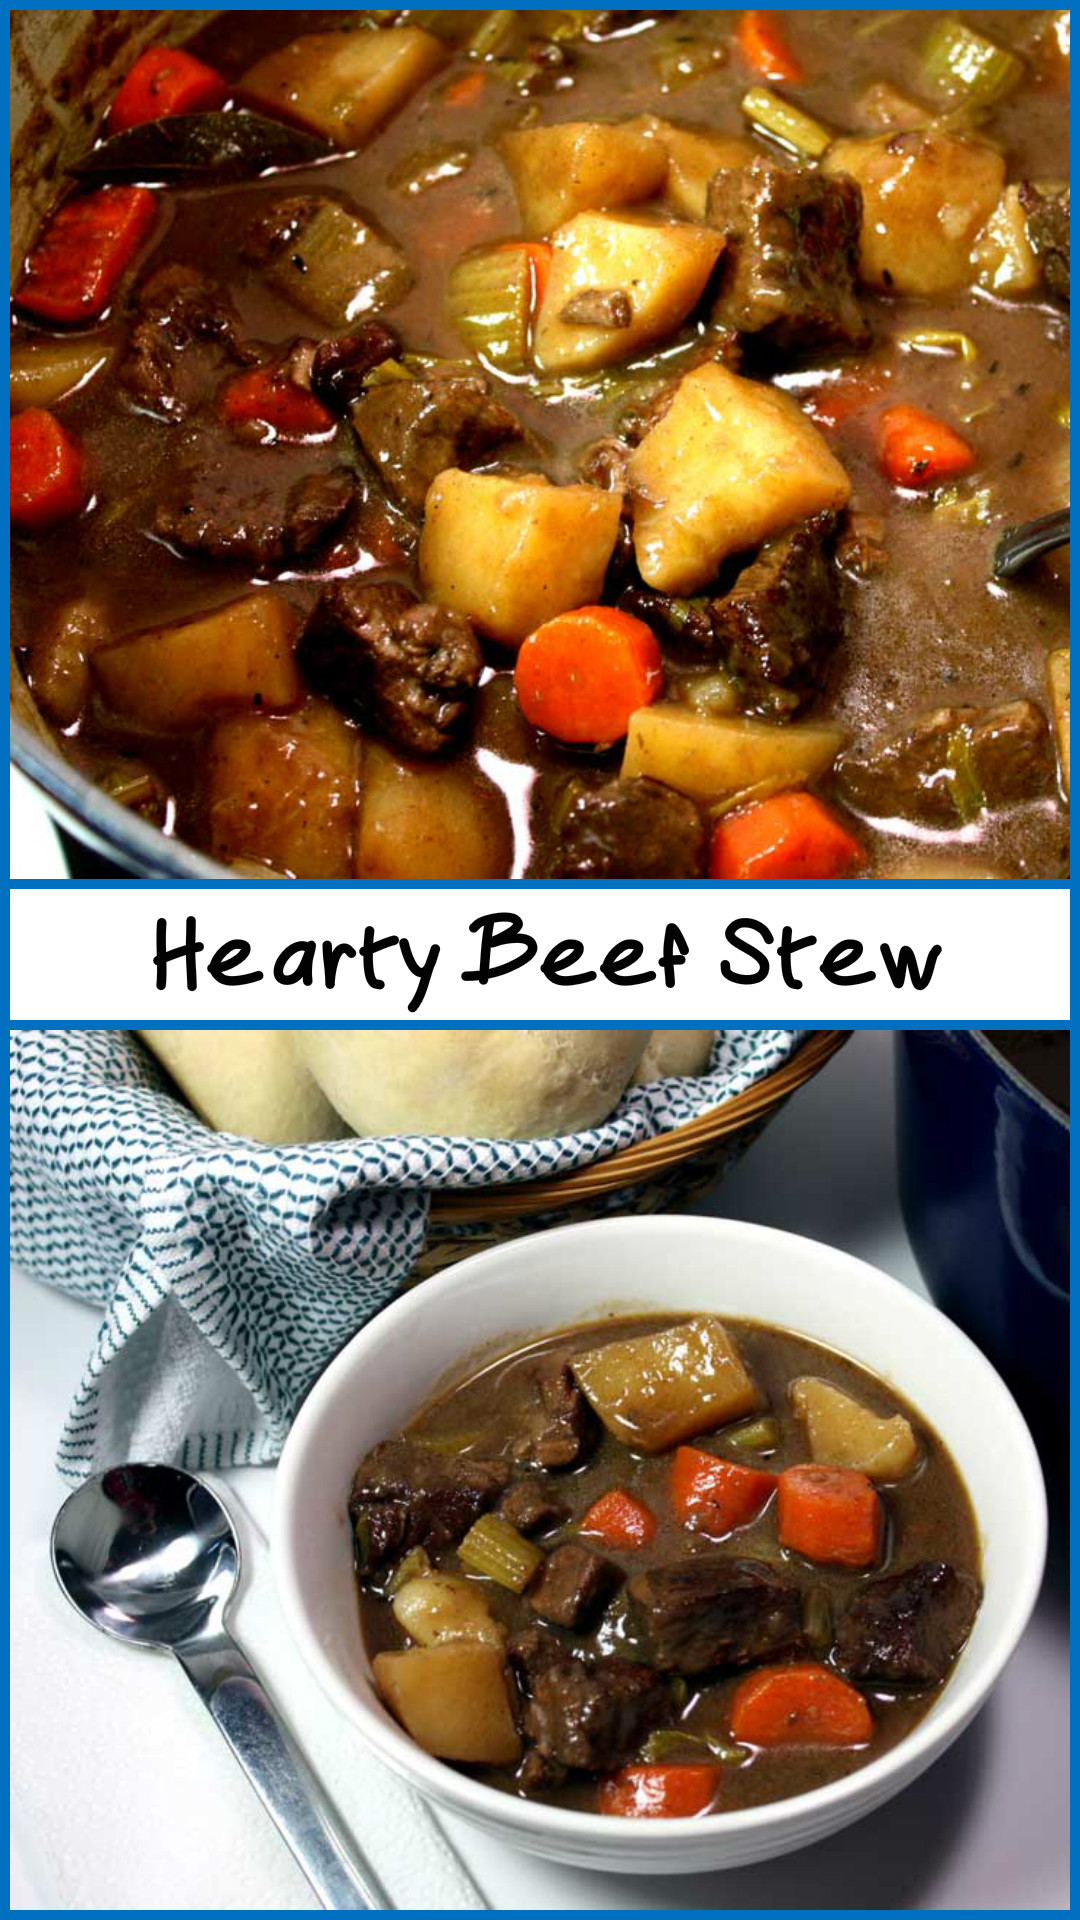 Hearty Beef Stew Thick Rich And Amazingly Delicious The Beef Melts In Your